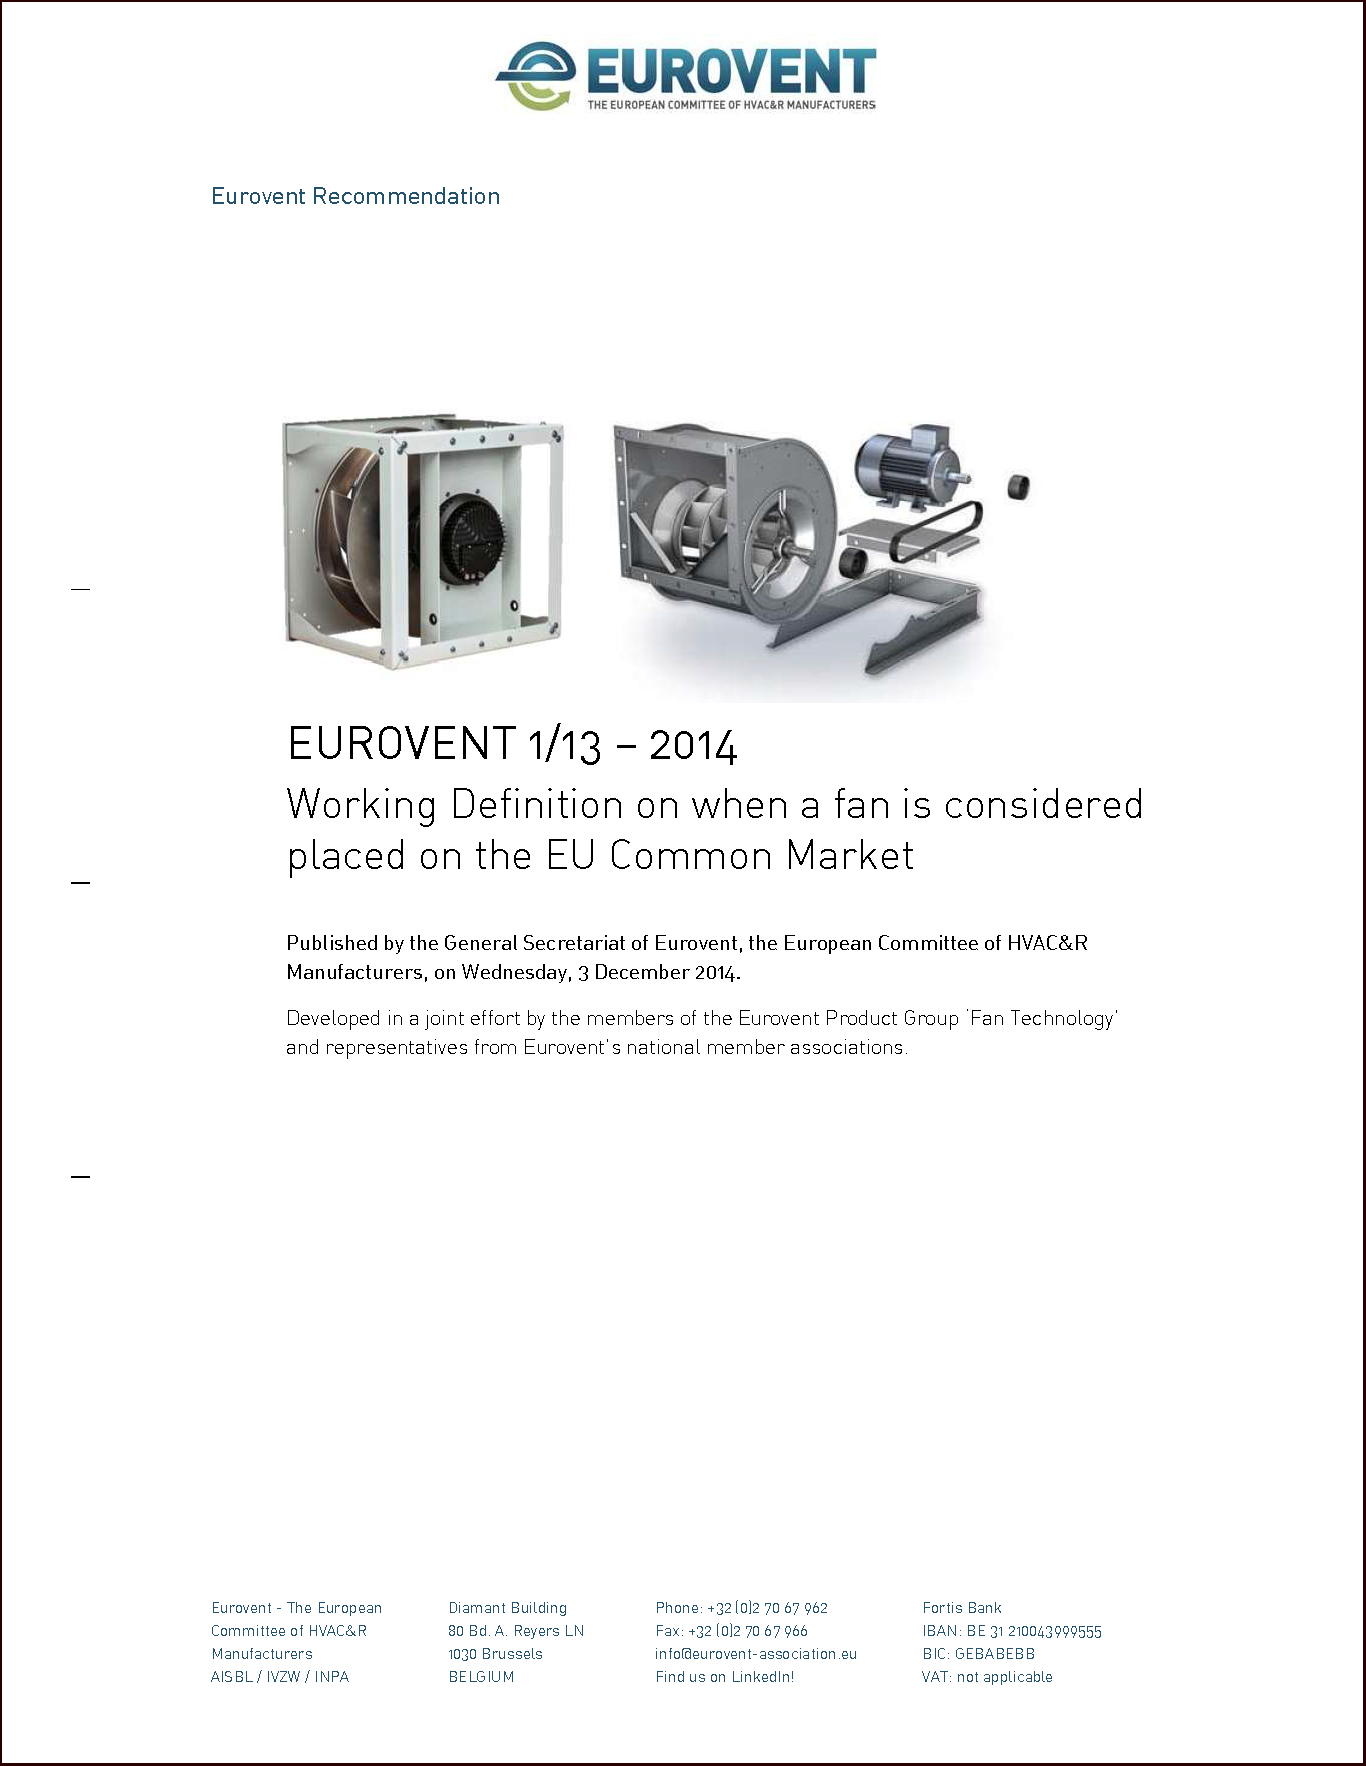 2014 - Working Definition on when a fan is considered placed on the EU Common Market